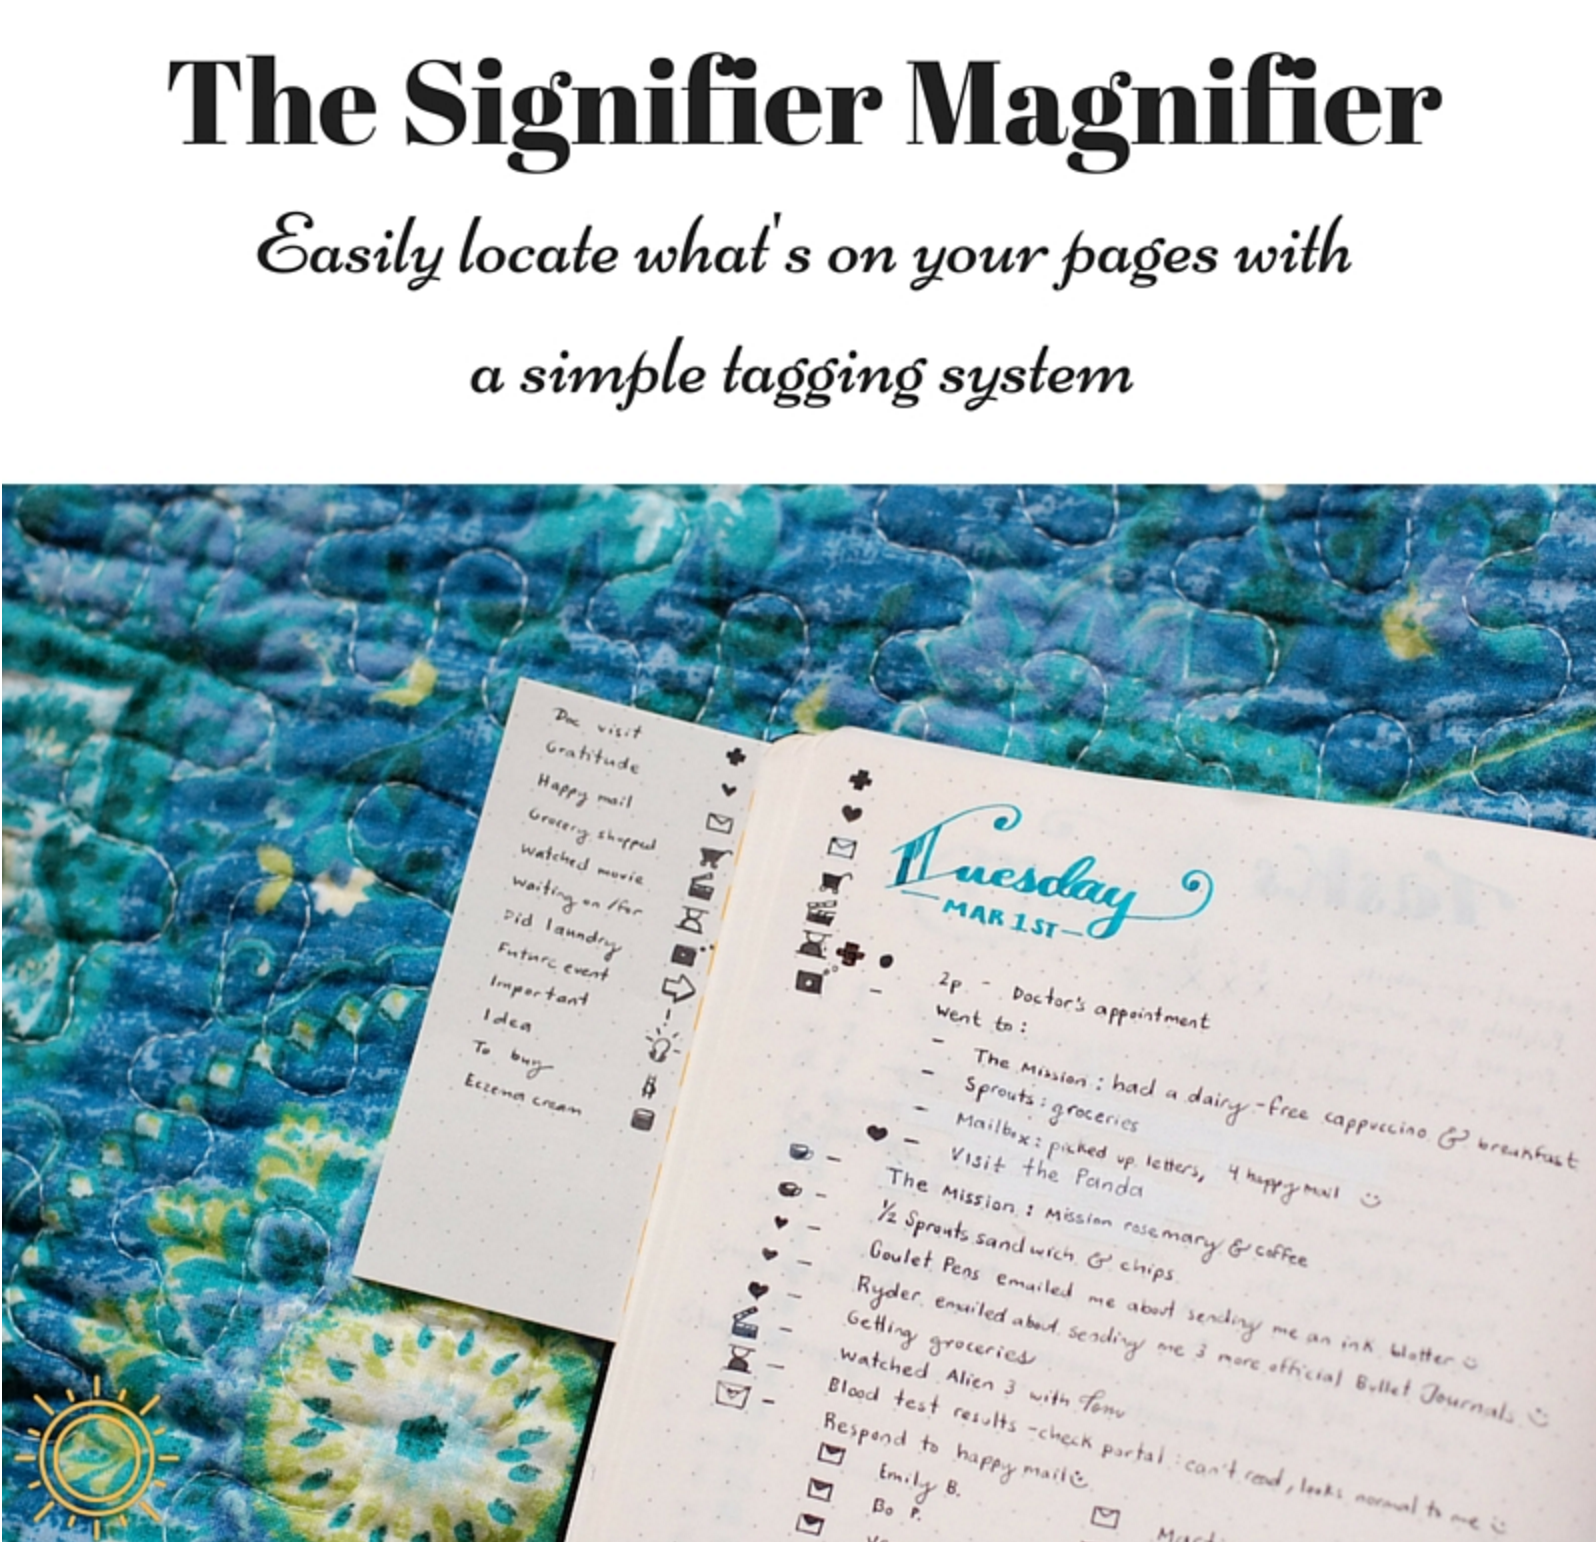 t he signifier magnifier